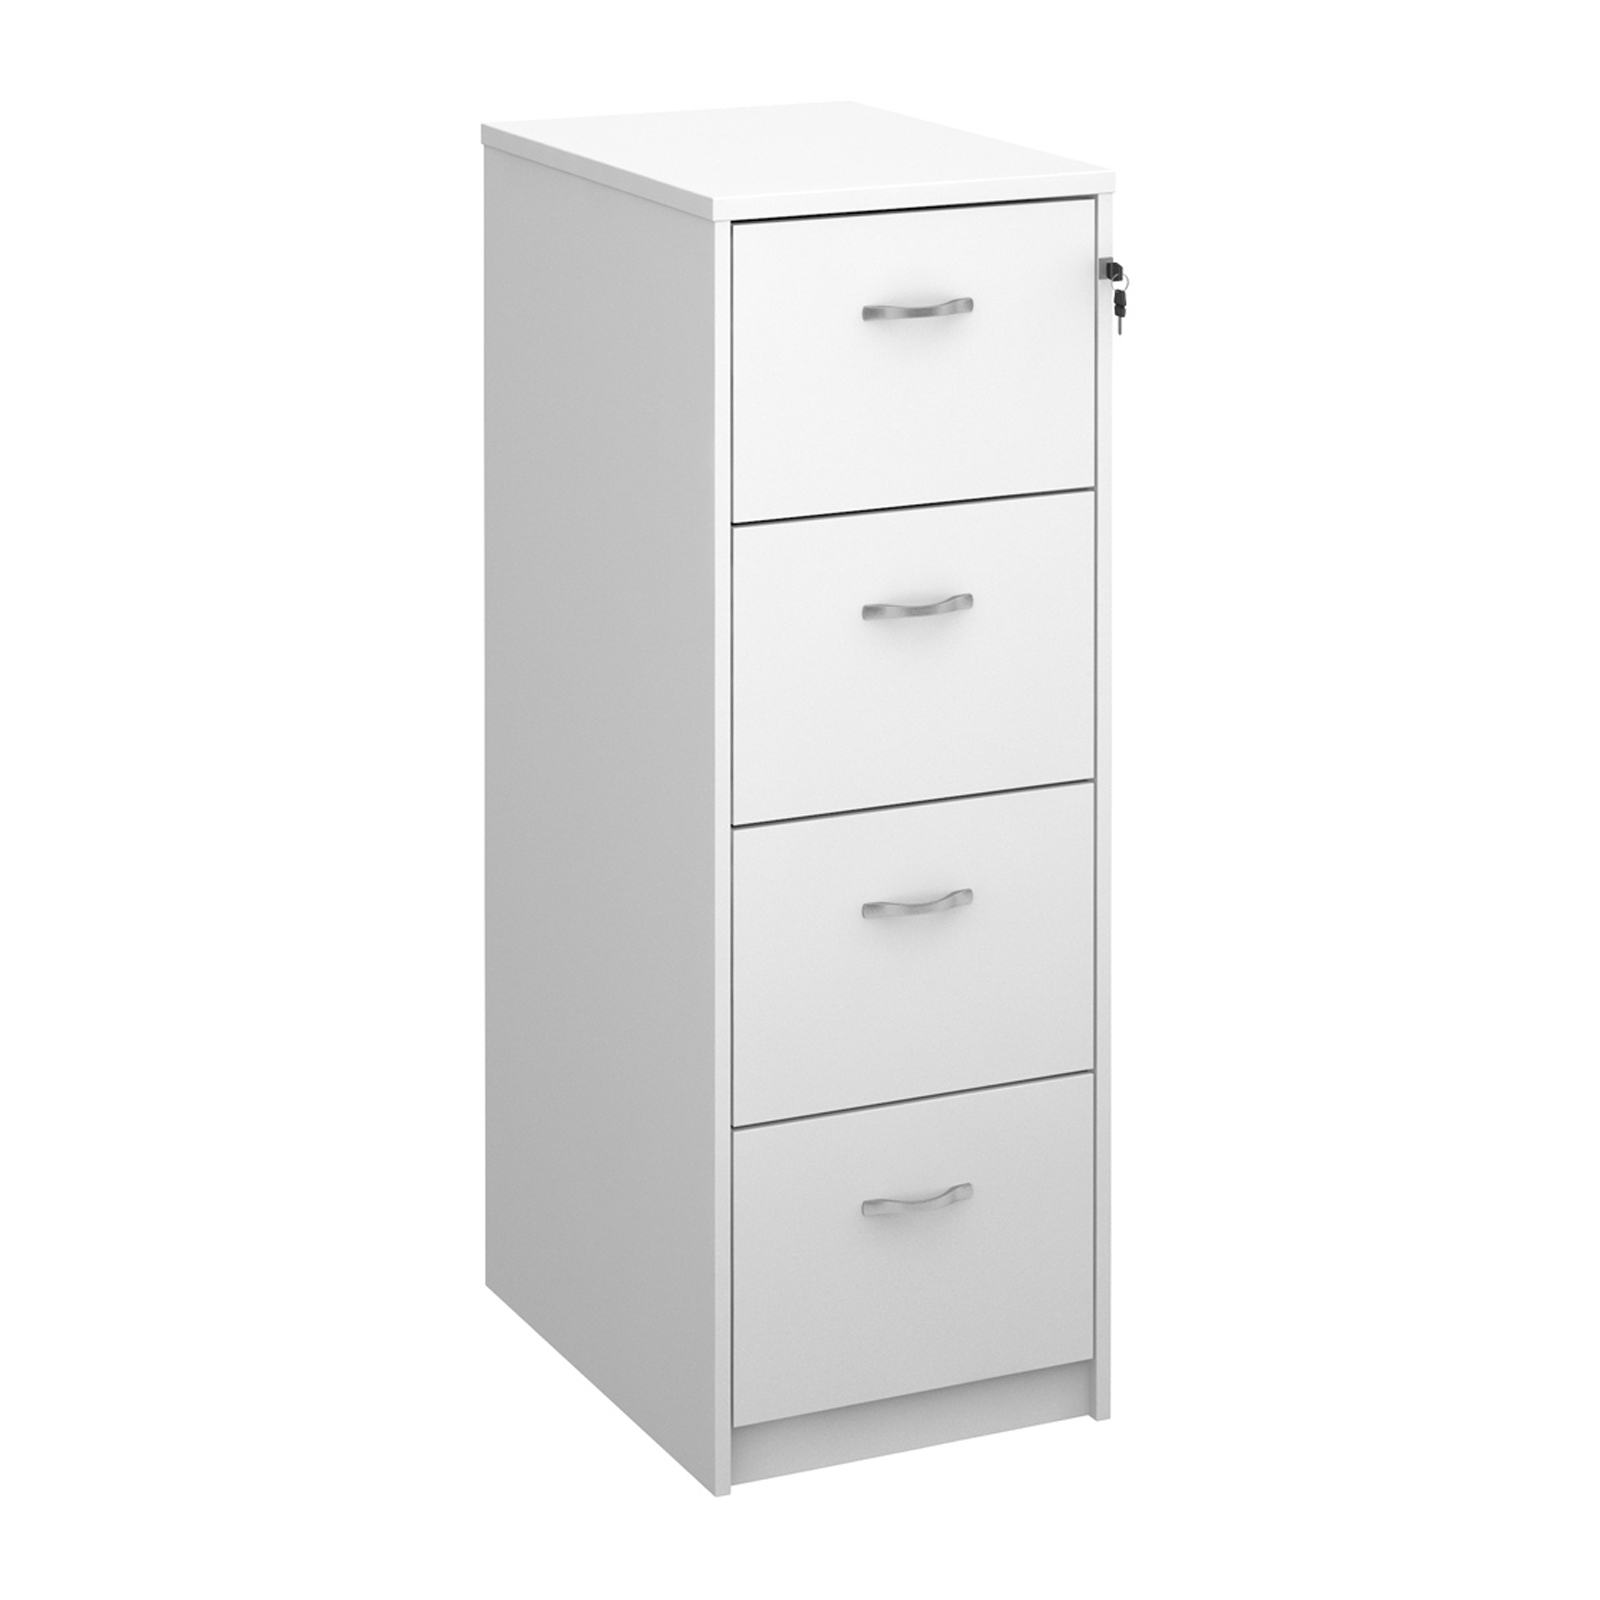 Wood Wooden 4 drawer filing cabinet with silver handles 1360mm high - white